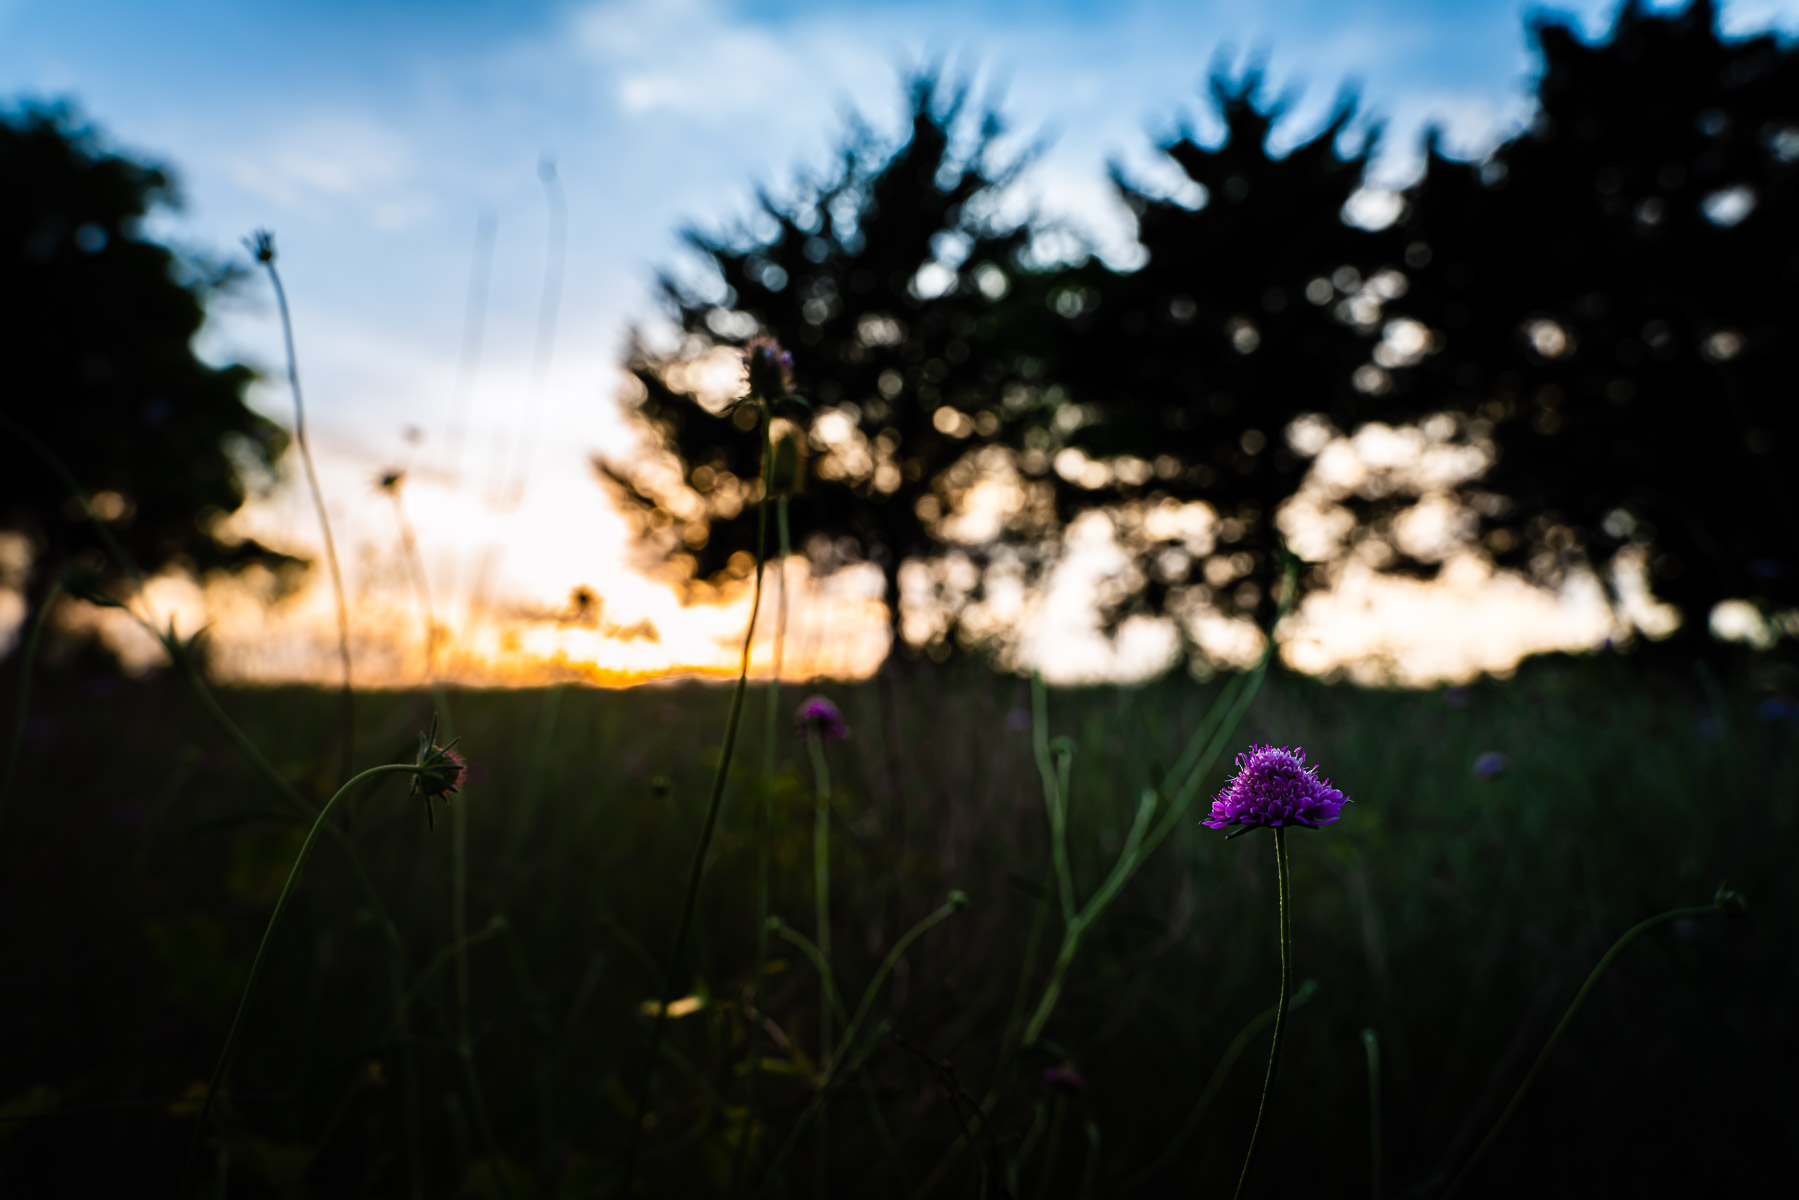 Wildflowers at sunset in McKinney, Texas' Erwin Park.